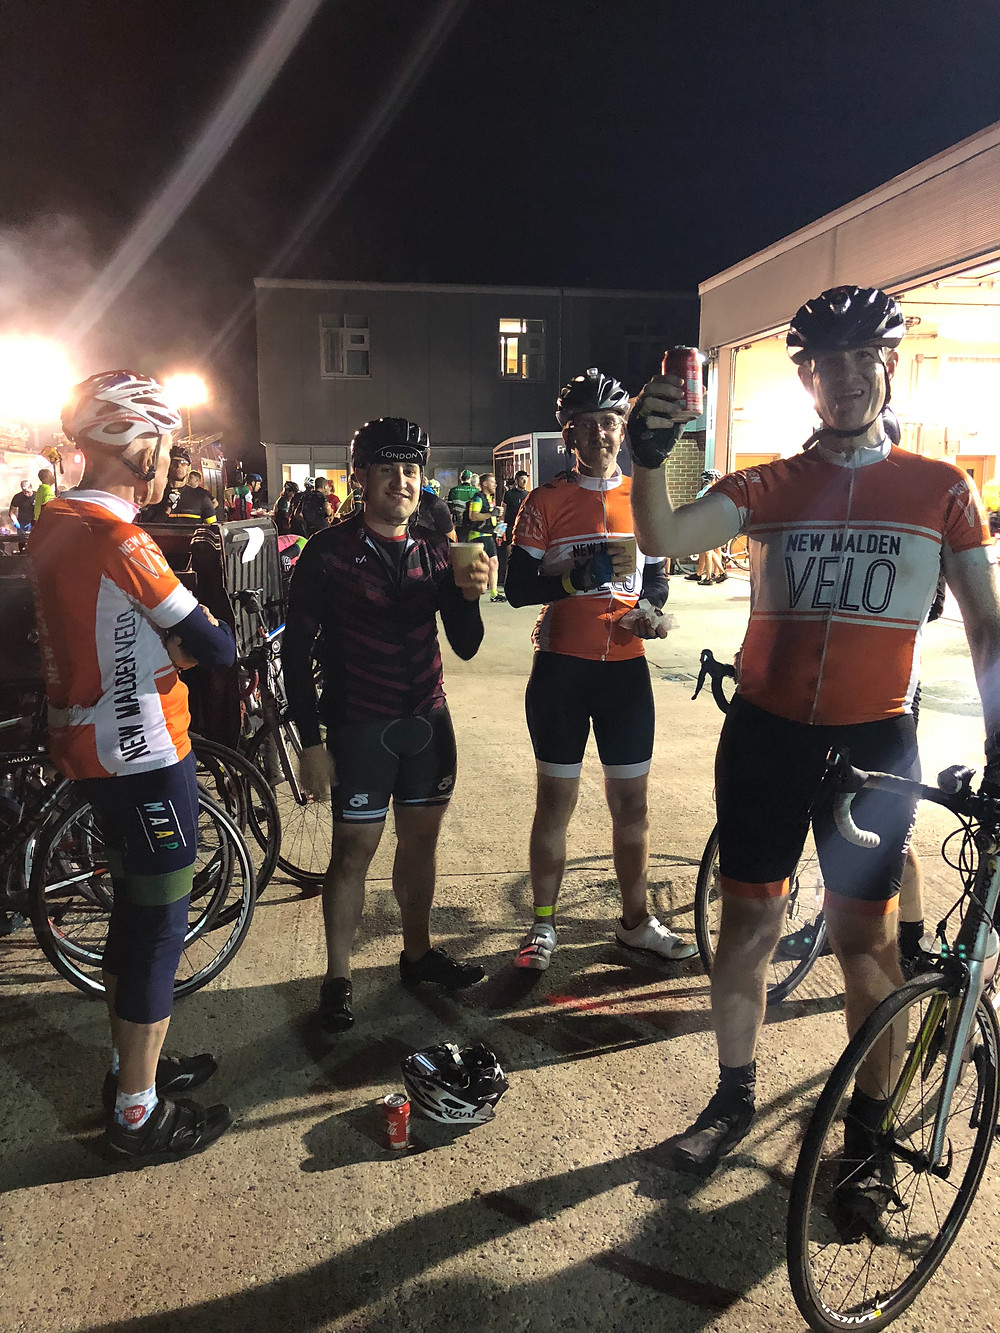 Dunwich Dynamo ride for New Malden Velo cycle club, stop at Sudbury fire station